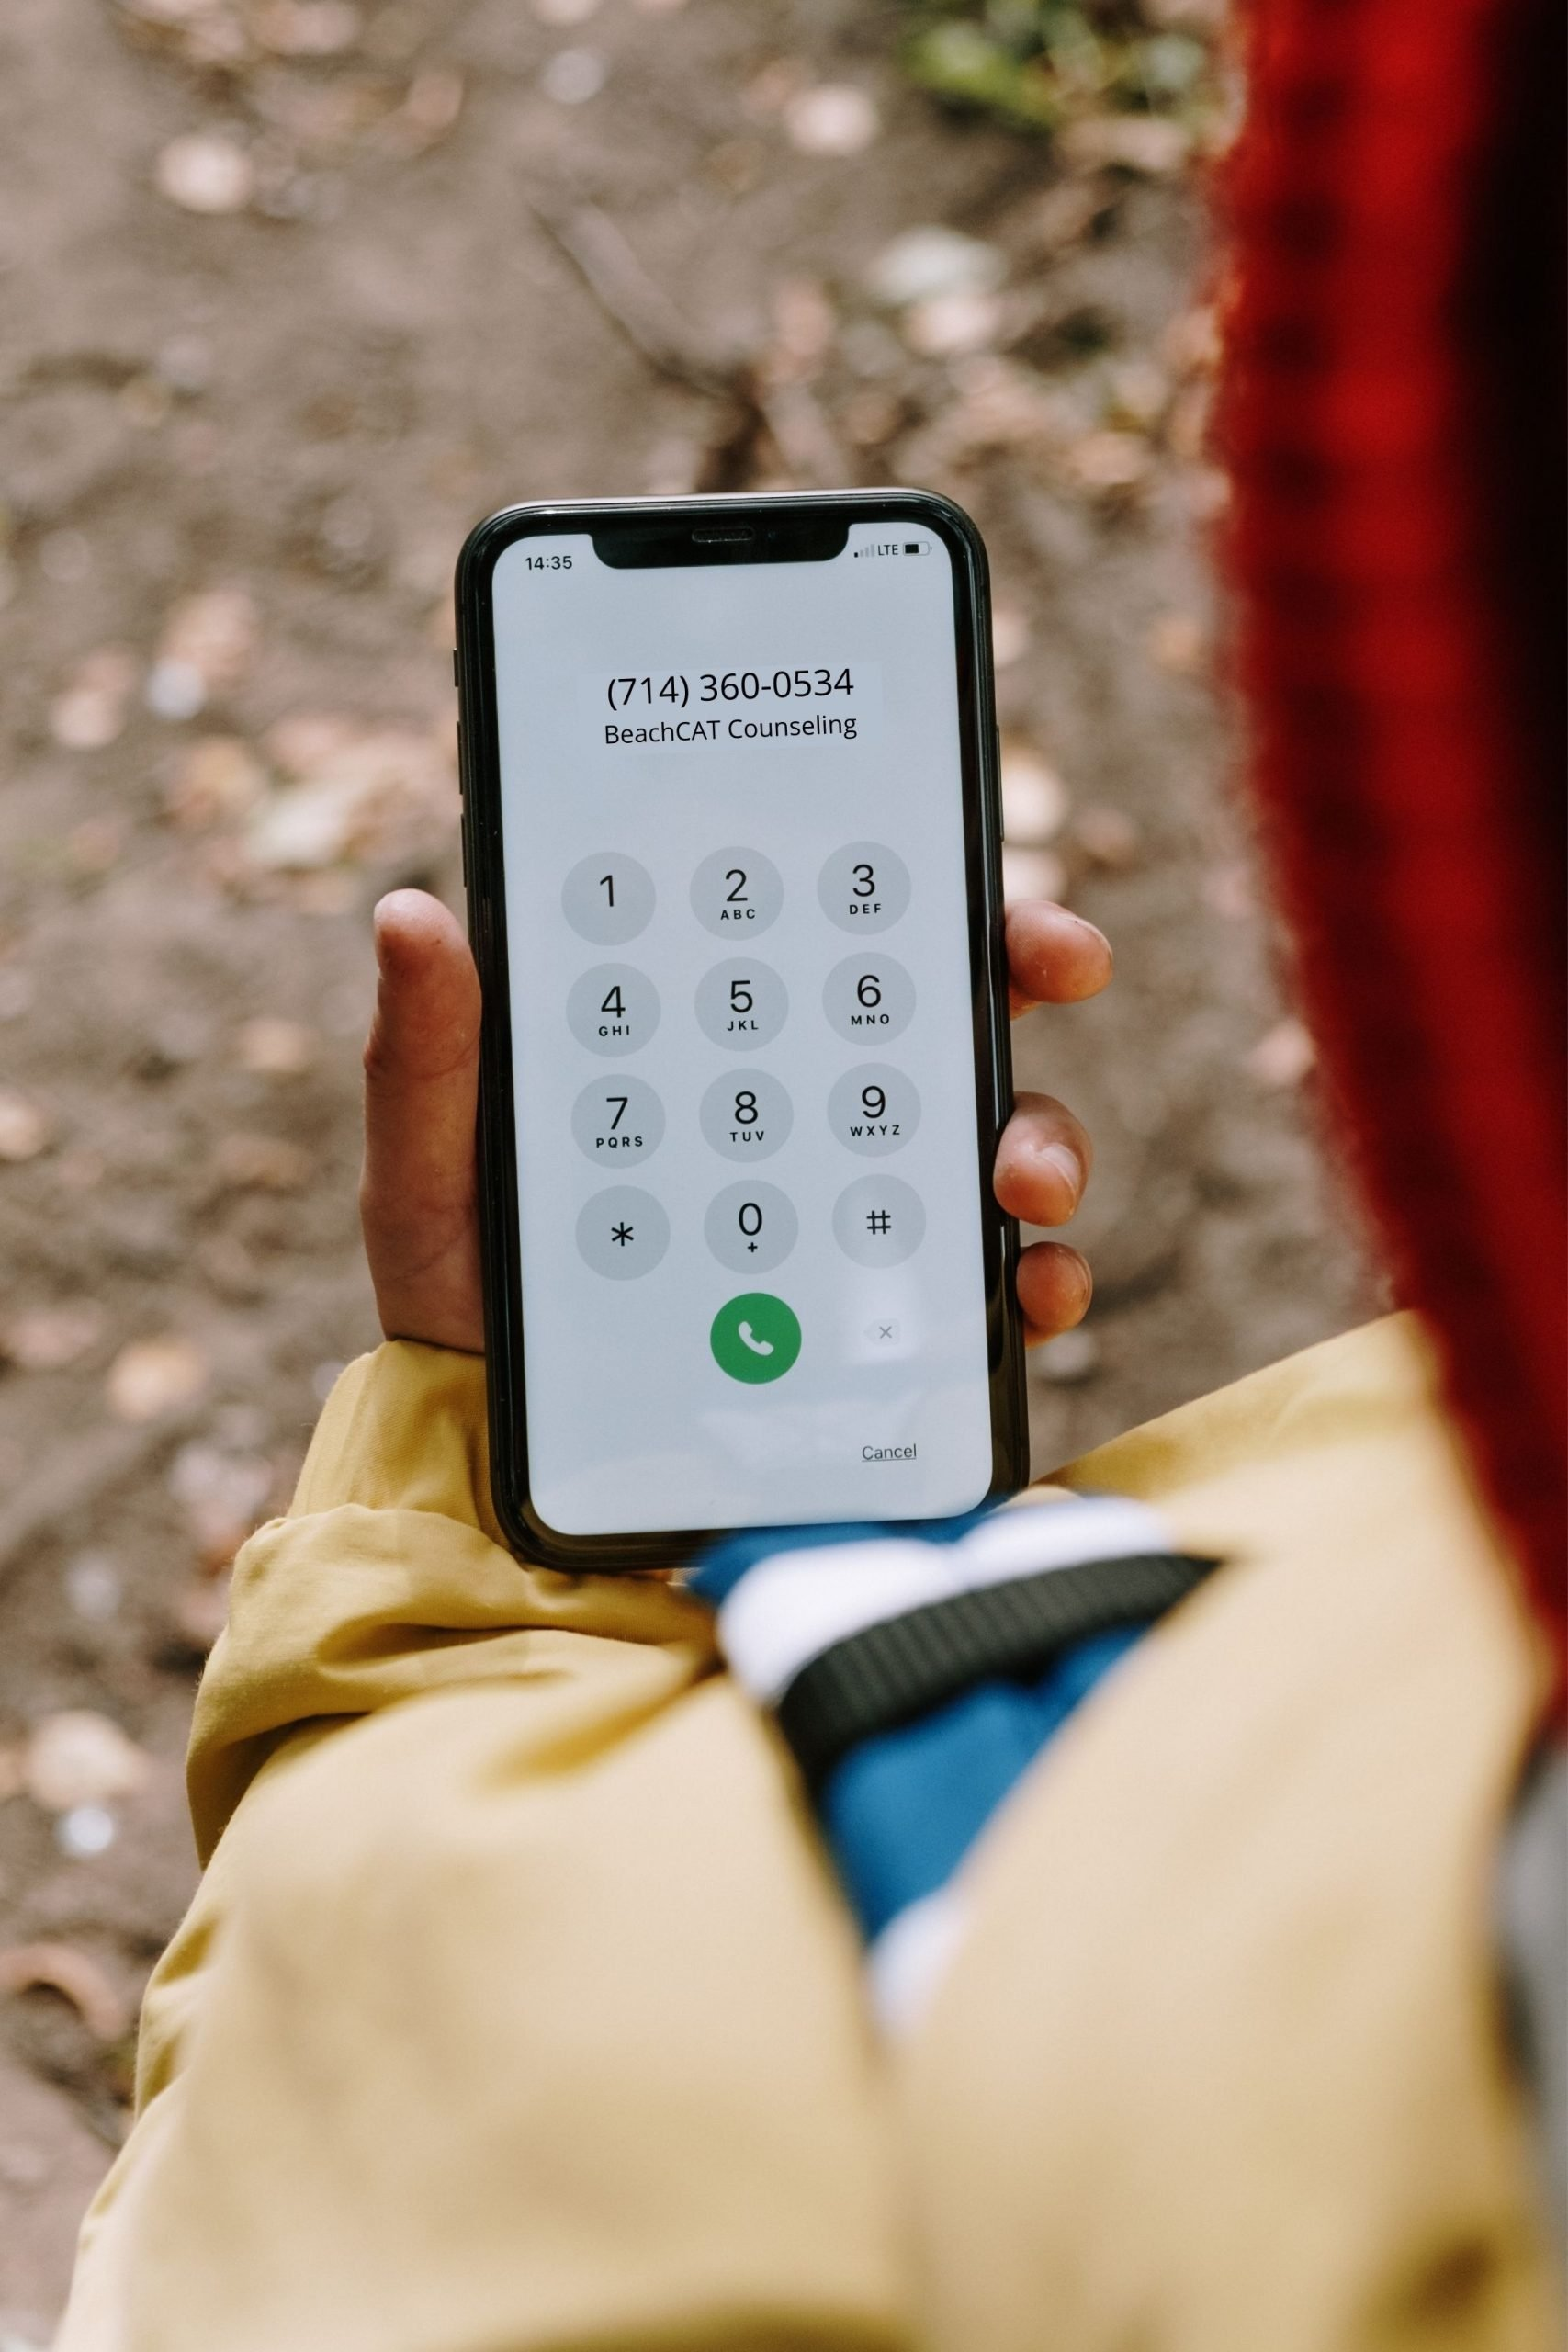 """A person who is looking for a mental health therapist is looking at their phone and is about to make a call. The phone screen shows the name """"BeachCAT Counseling"""" and the phone number, """"714-360-0534."""""""